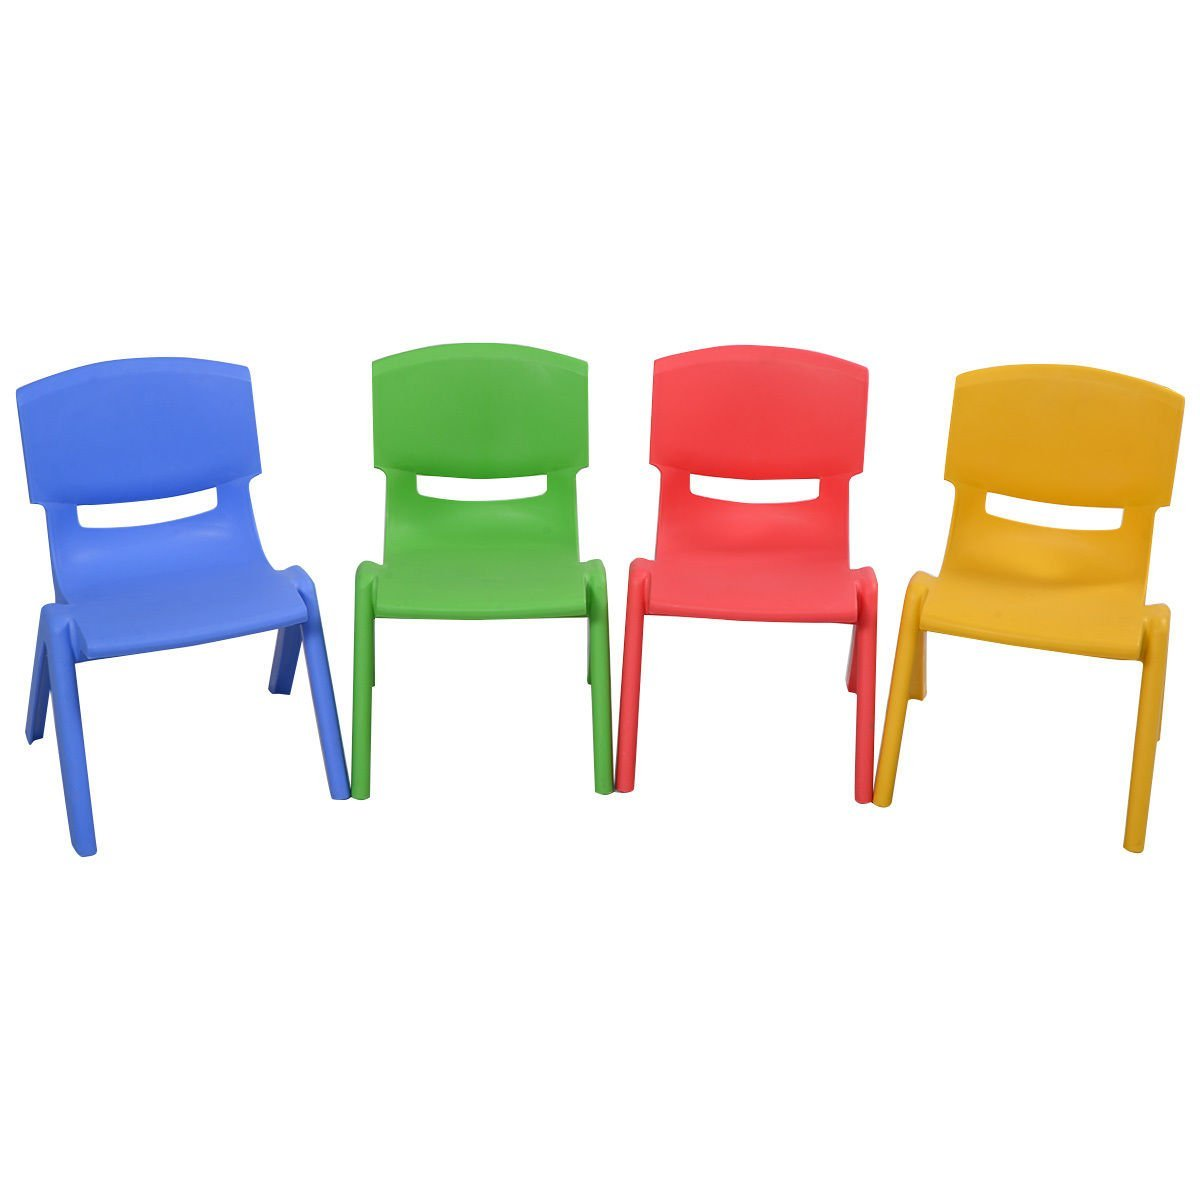 chairs for kids amazon.com: costzon set of 4 kids plastic chairs stackable play and learn YVZXHZS